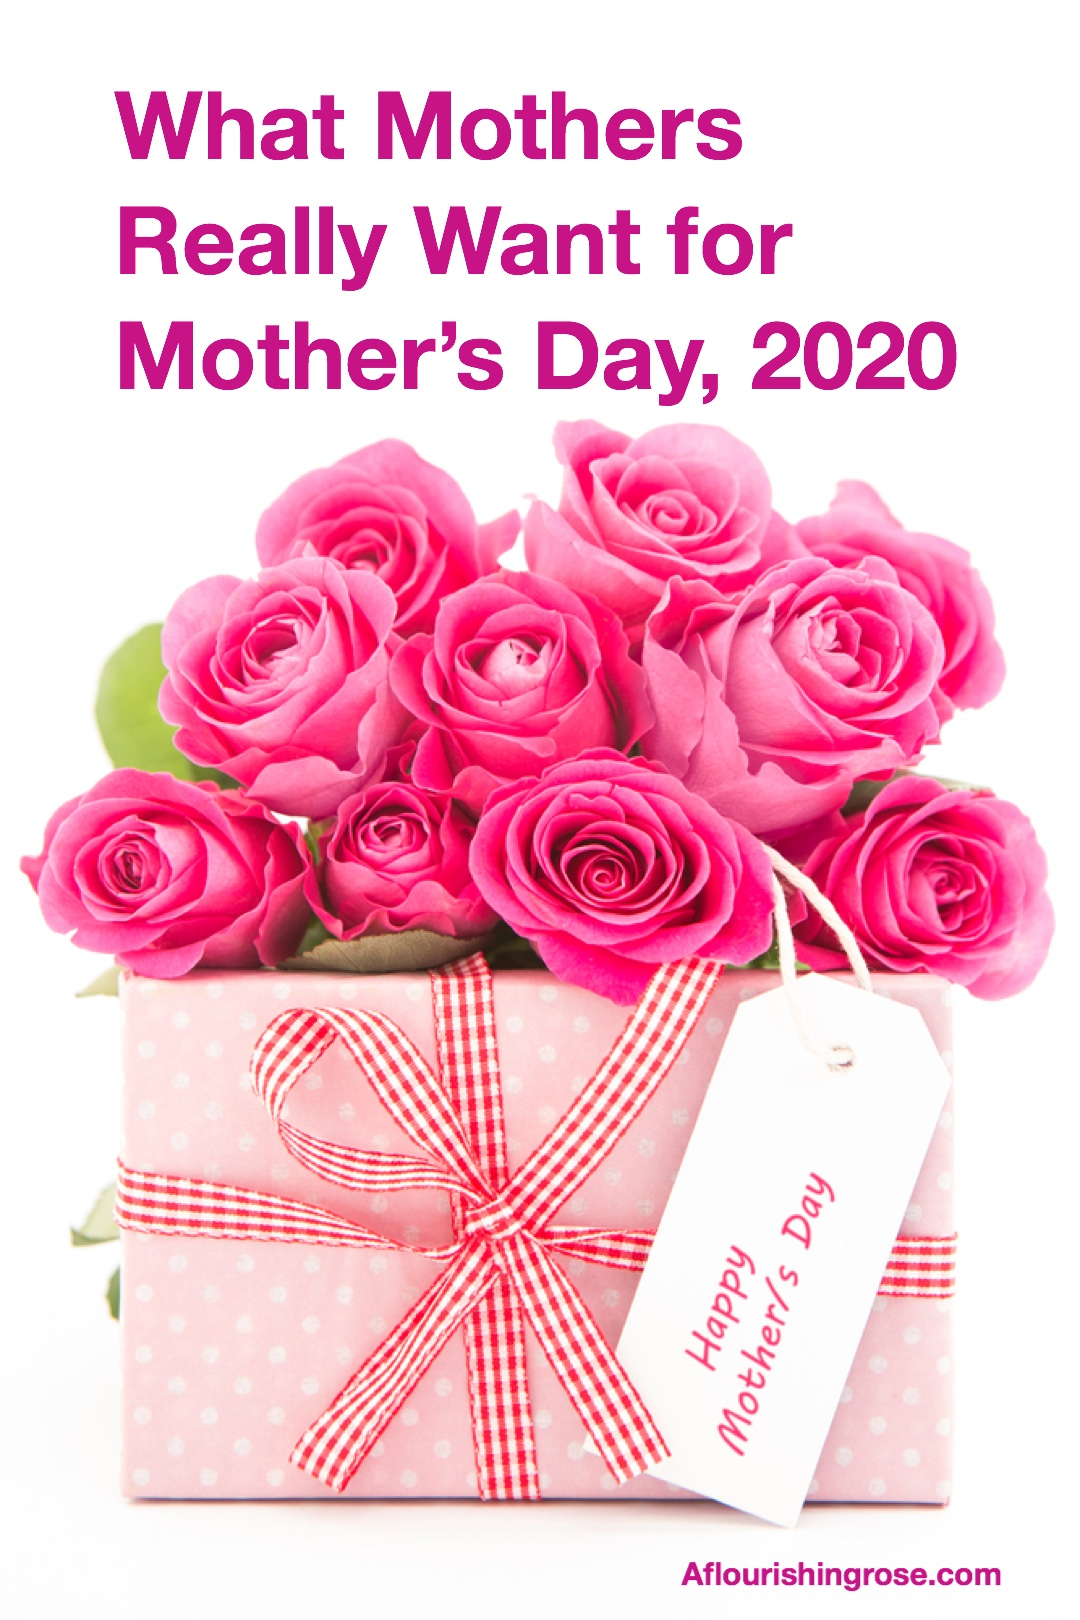 What Mothers Really Want for Mother's Day 2020